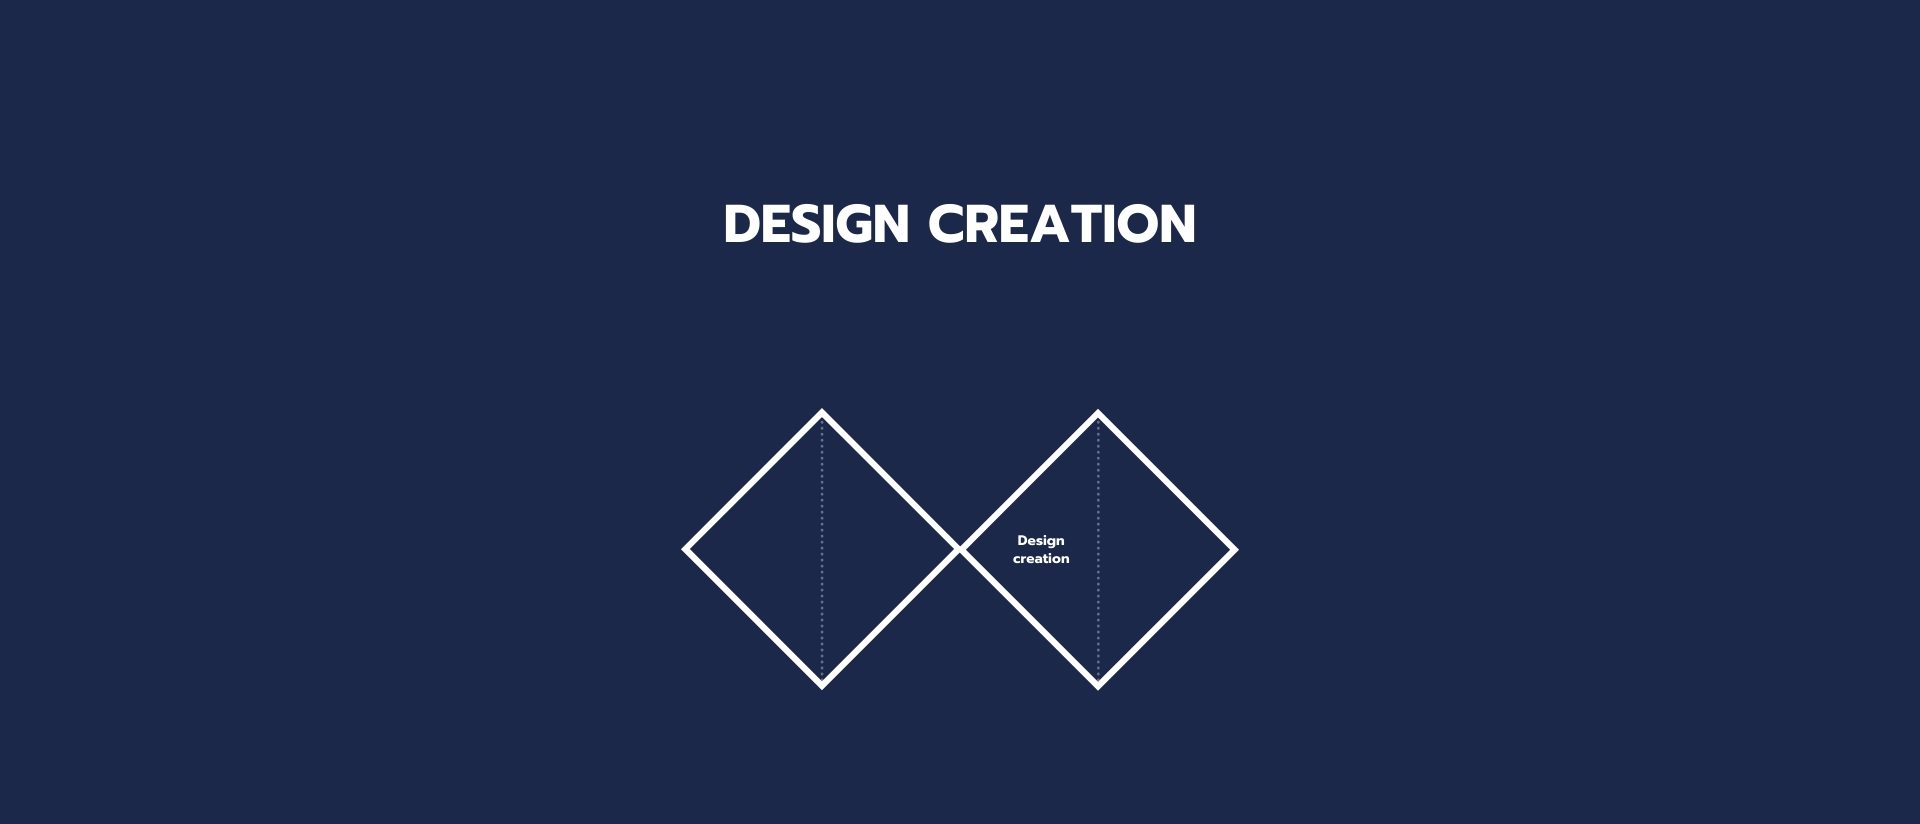 This is the fun part. We start with generating actual design ideas.